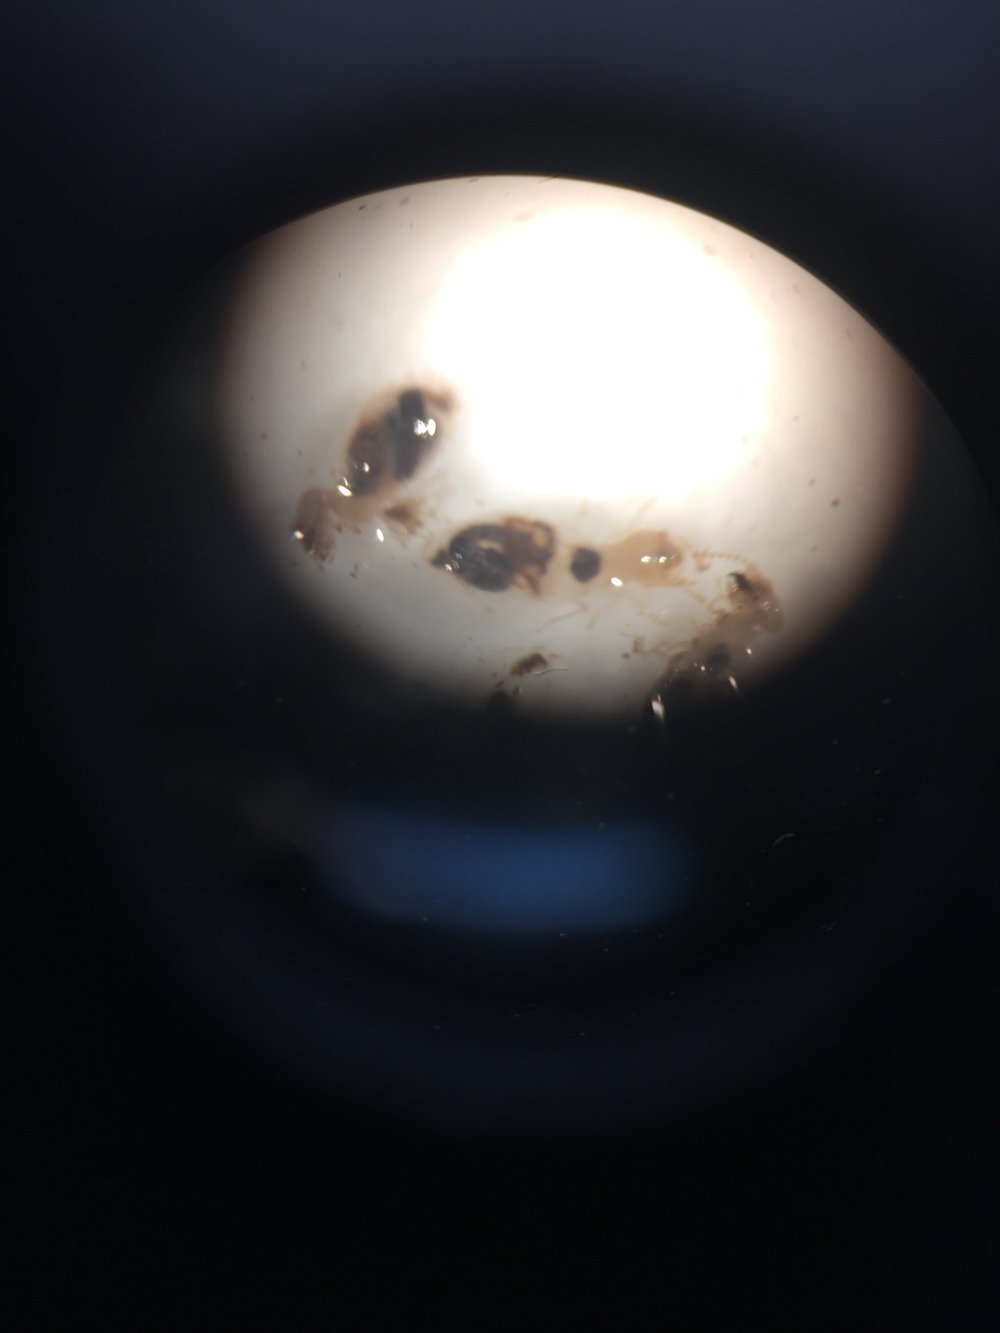 Termites down the microscope